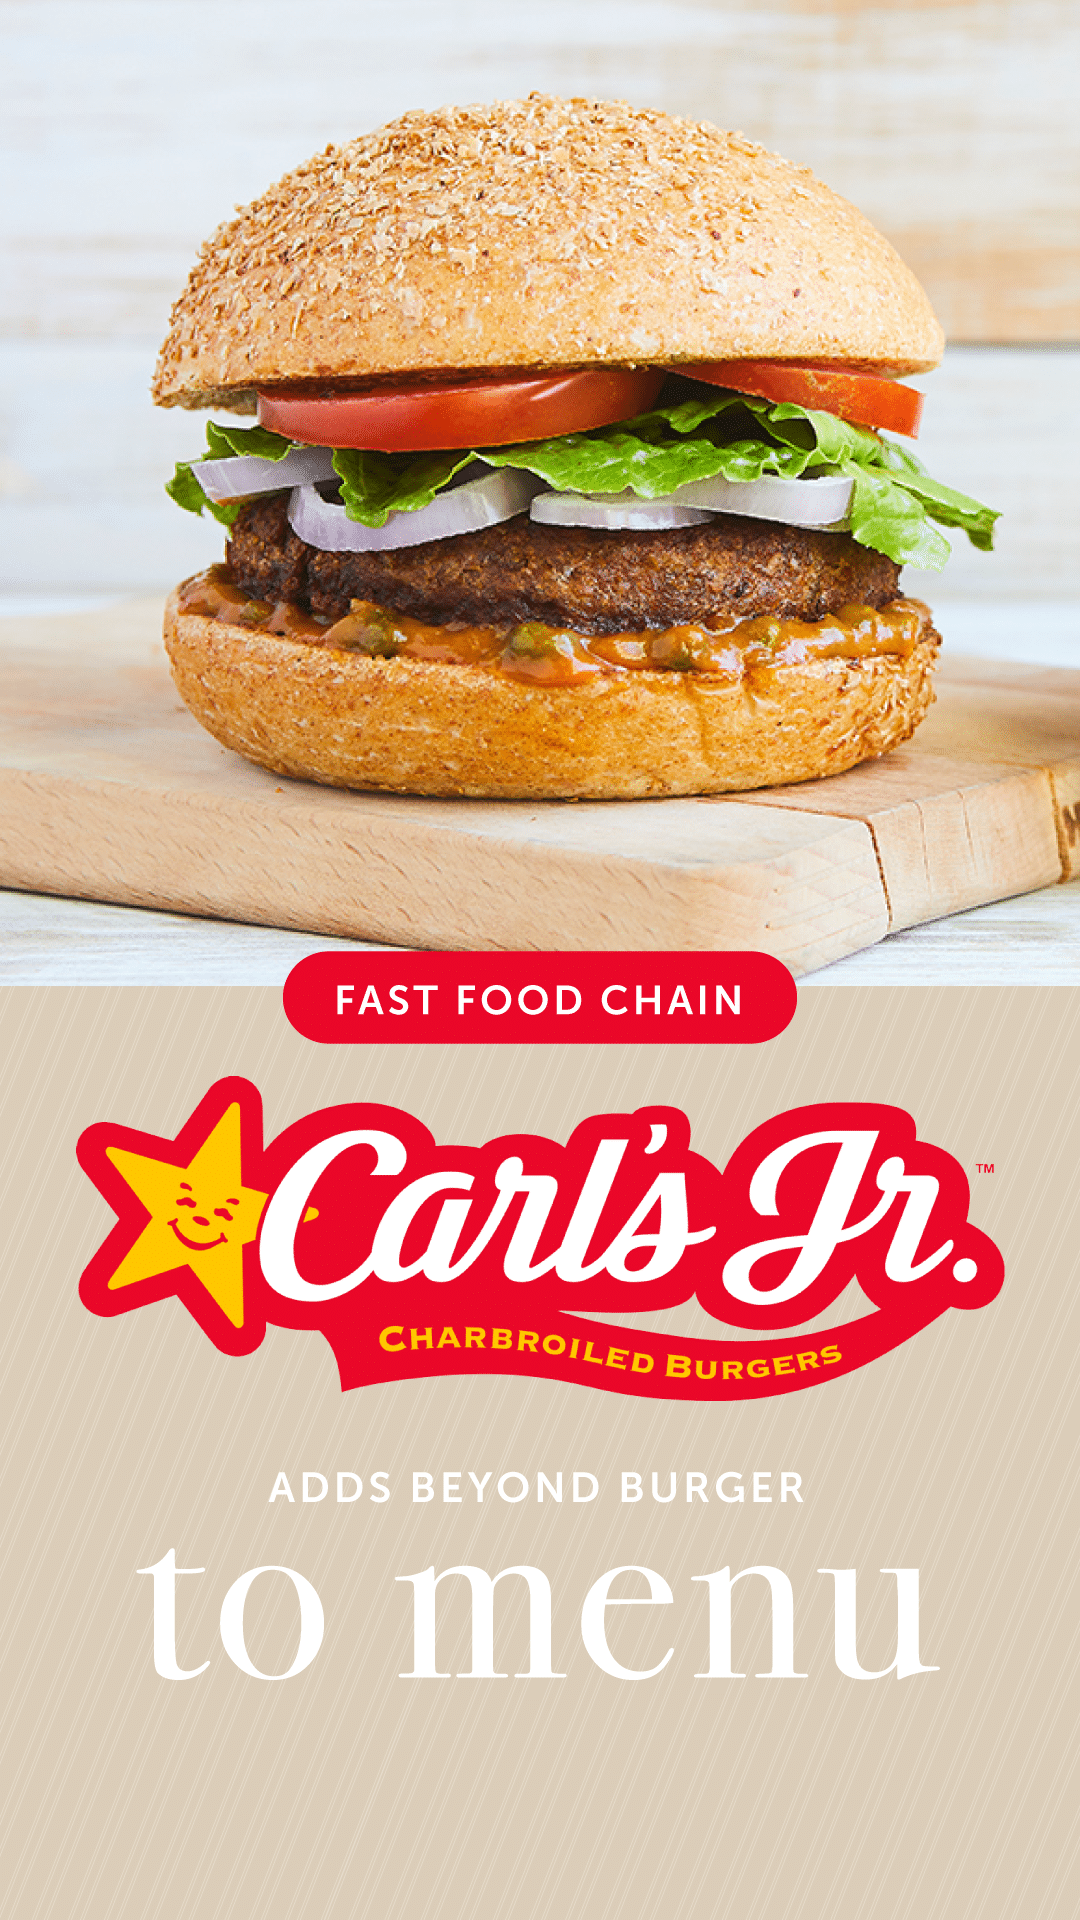 Fast-Food Chain Carl's Jr. Adds Beyond Burger to Menu